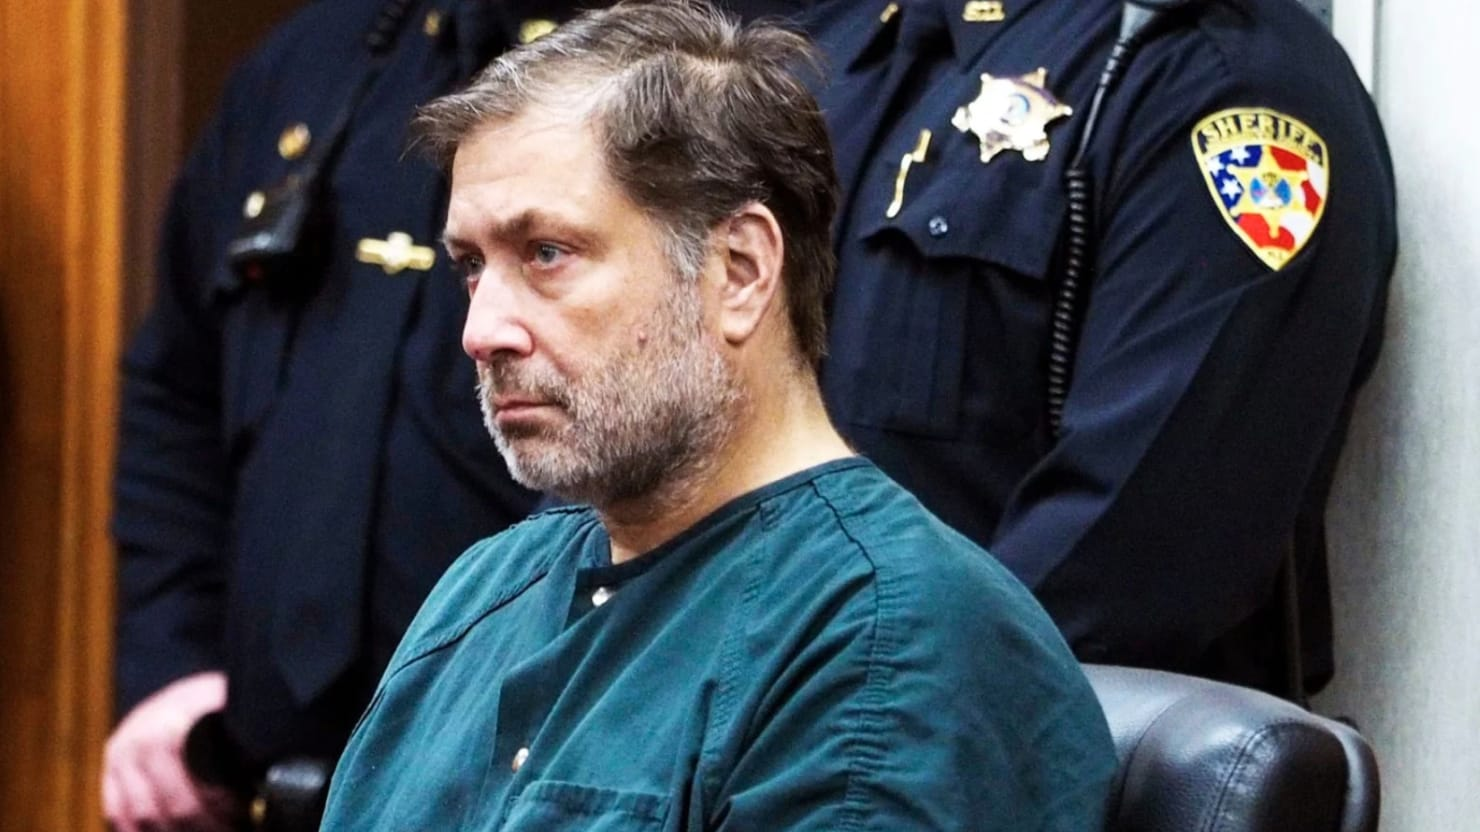 NJ Businessman Who Killed Brother's Entire Family Stole Kids' Money in the Days Prior: Suit